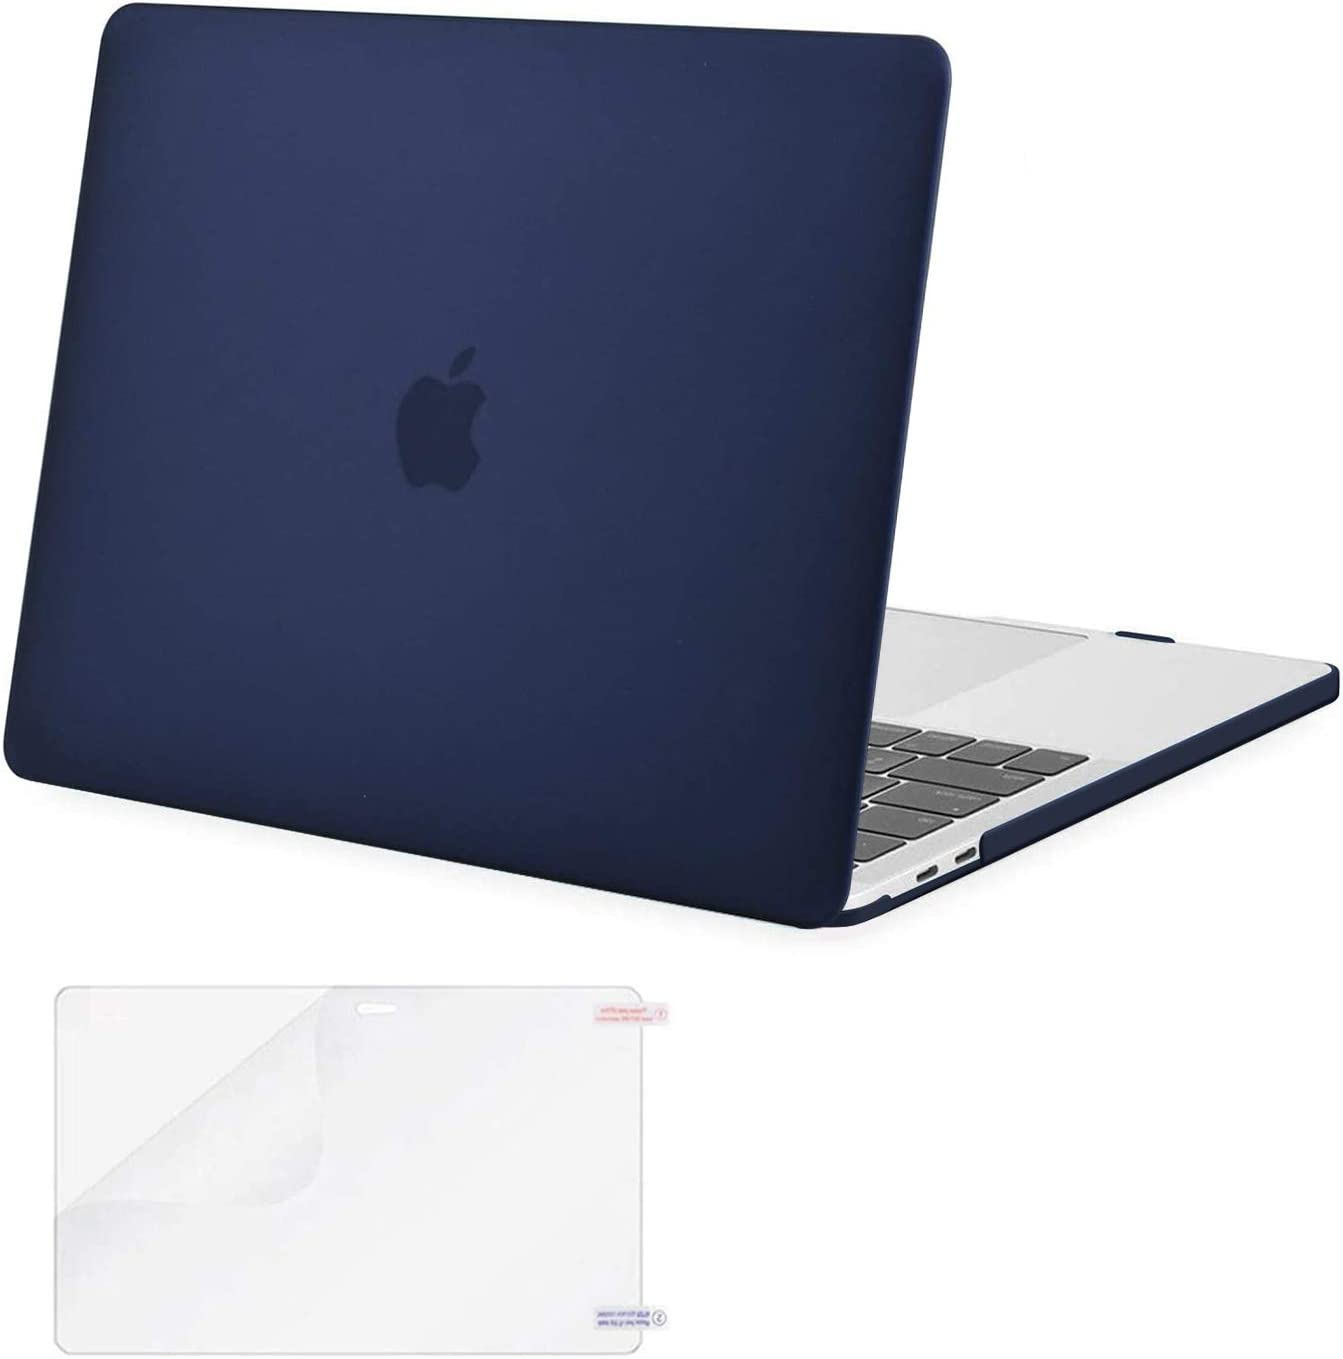 MOSISO Compatible with MacBook Pro 13 inch Case 2016-2020 Release A2338 M1 A2289 A2251 A2159 A1989 A1706 A1708 with/Without Touch Bar, Plastic Hard Shell Case Cover & Screen Protector, Navy Blue